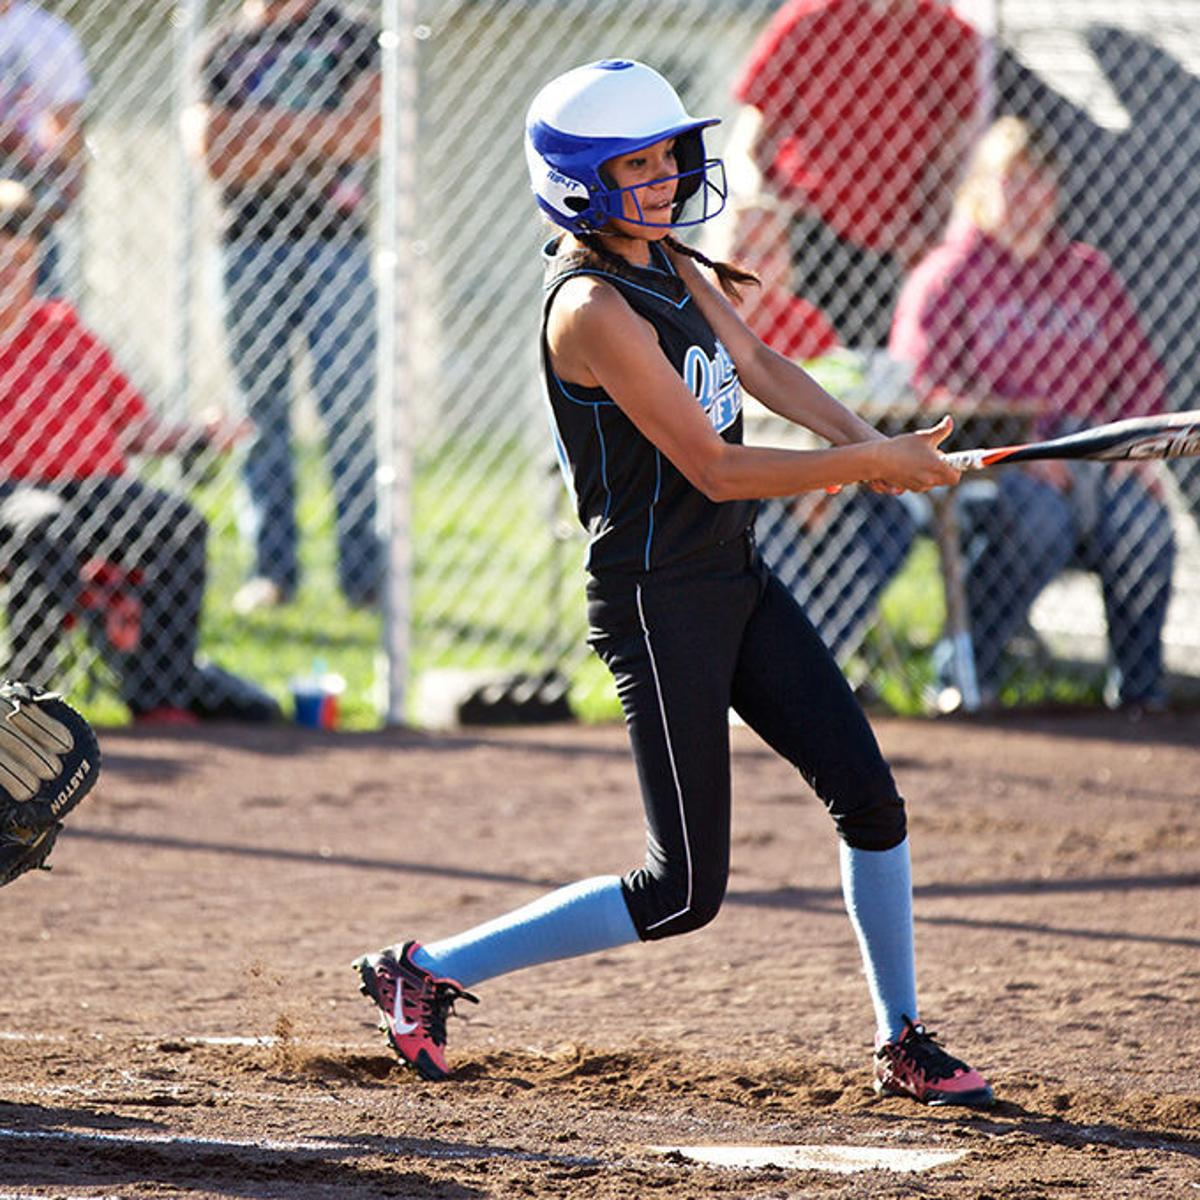 Chiloquin softball player is unstoppable | Sports